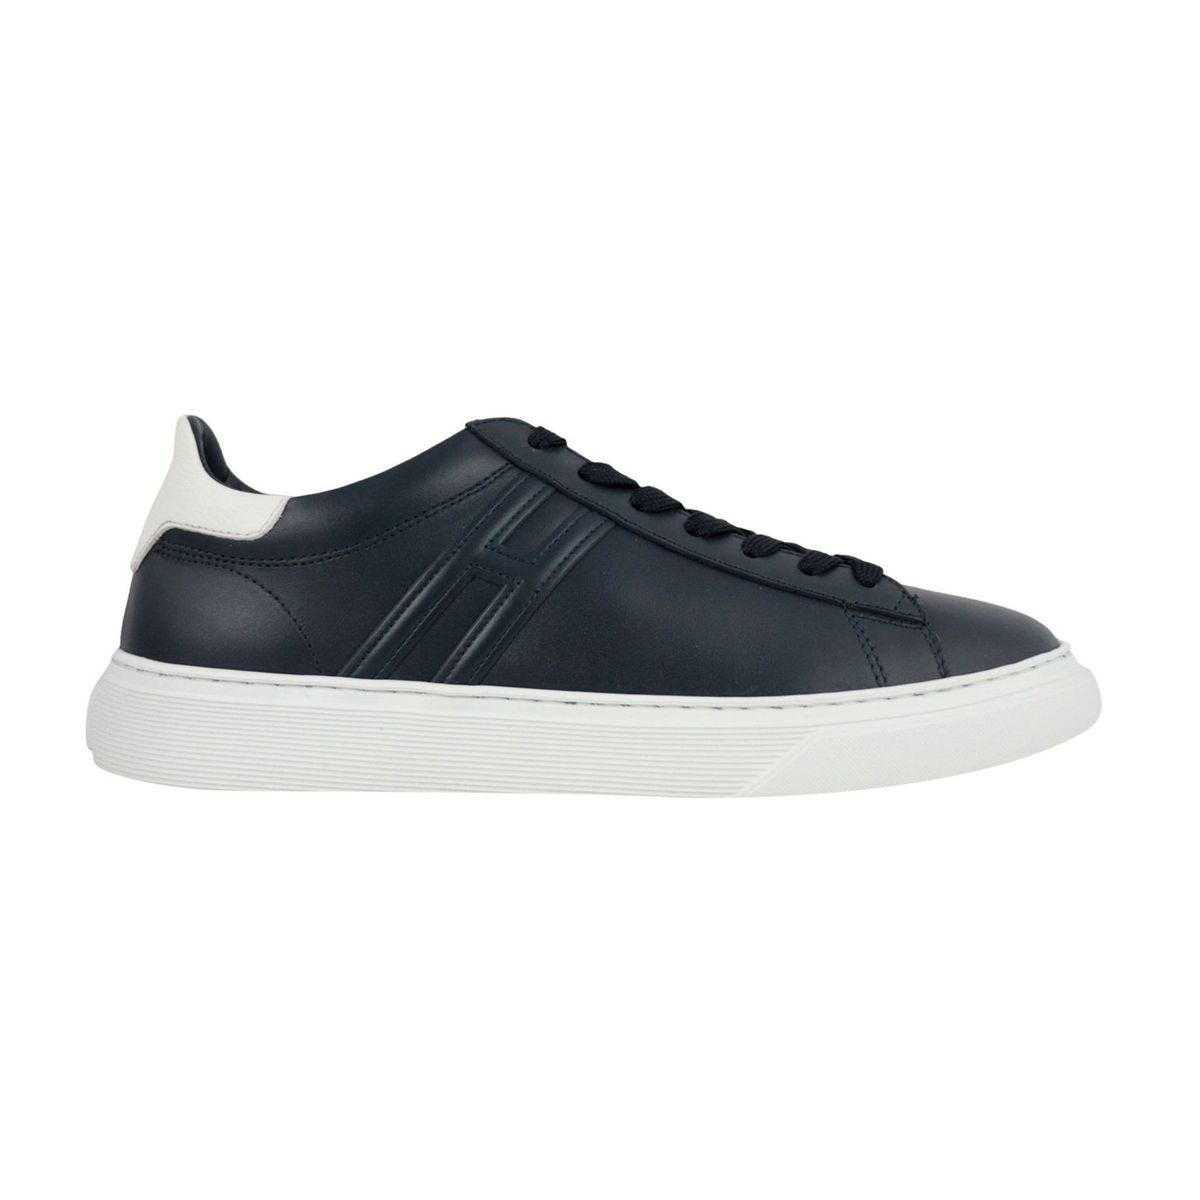 365 leather bottom sneakers Navy Hogan